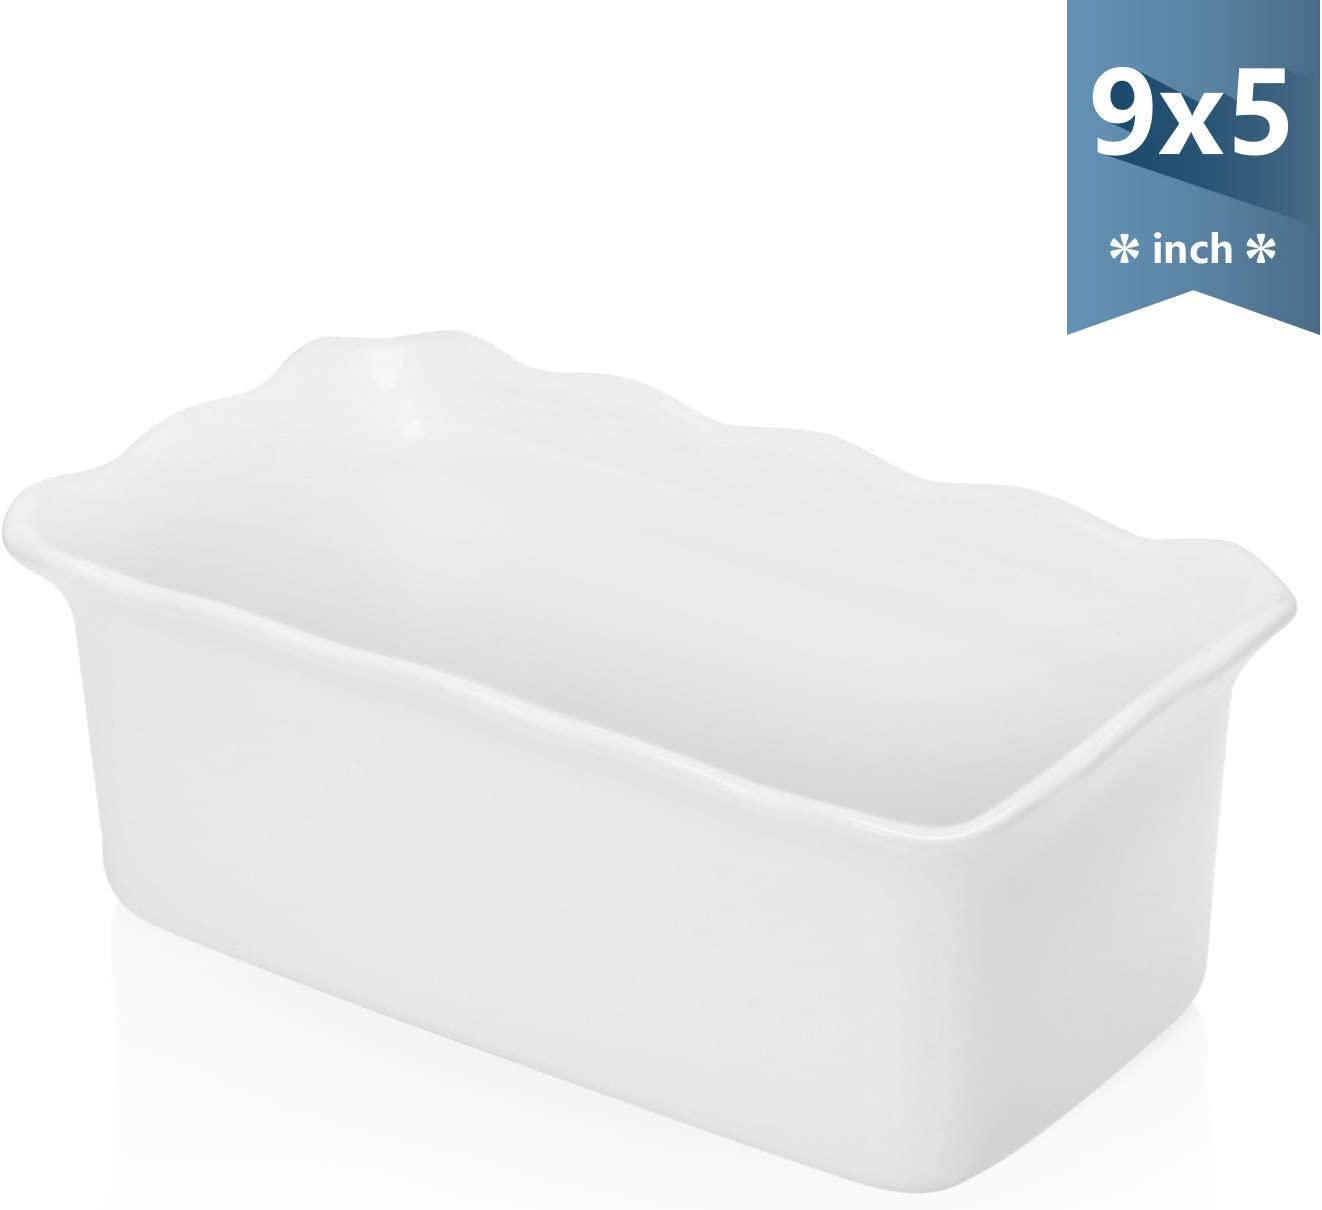 Sweese 519.101 Porcelain loaf pan for Baking, Non-Stick Bread Pan Cake Pan, Perfect for Bread and Meat, 9 x 5 inches - White